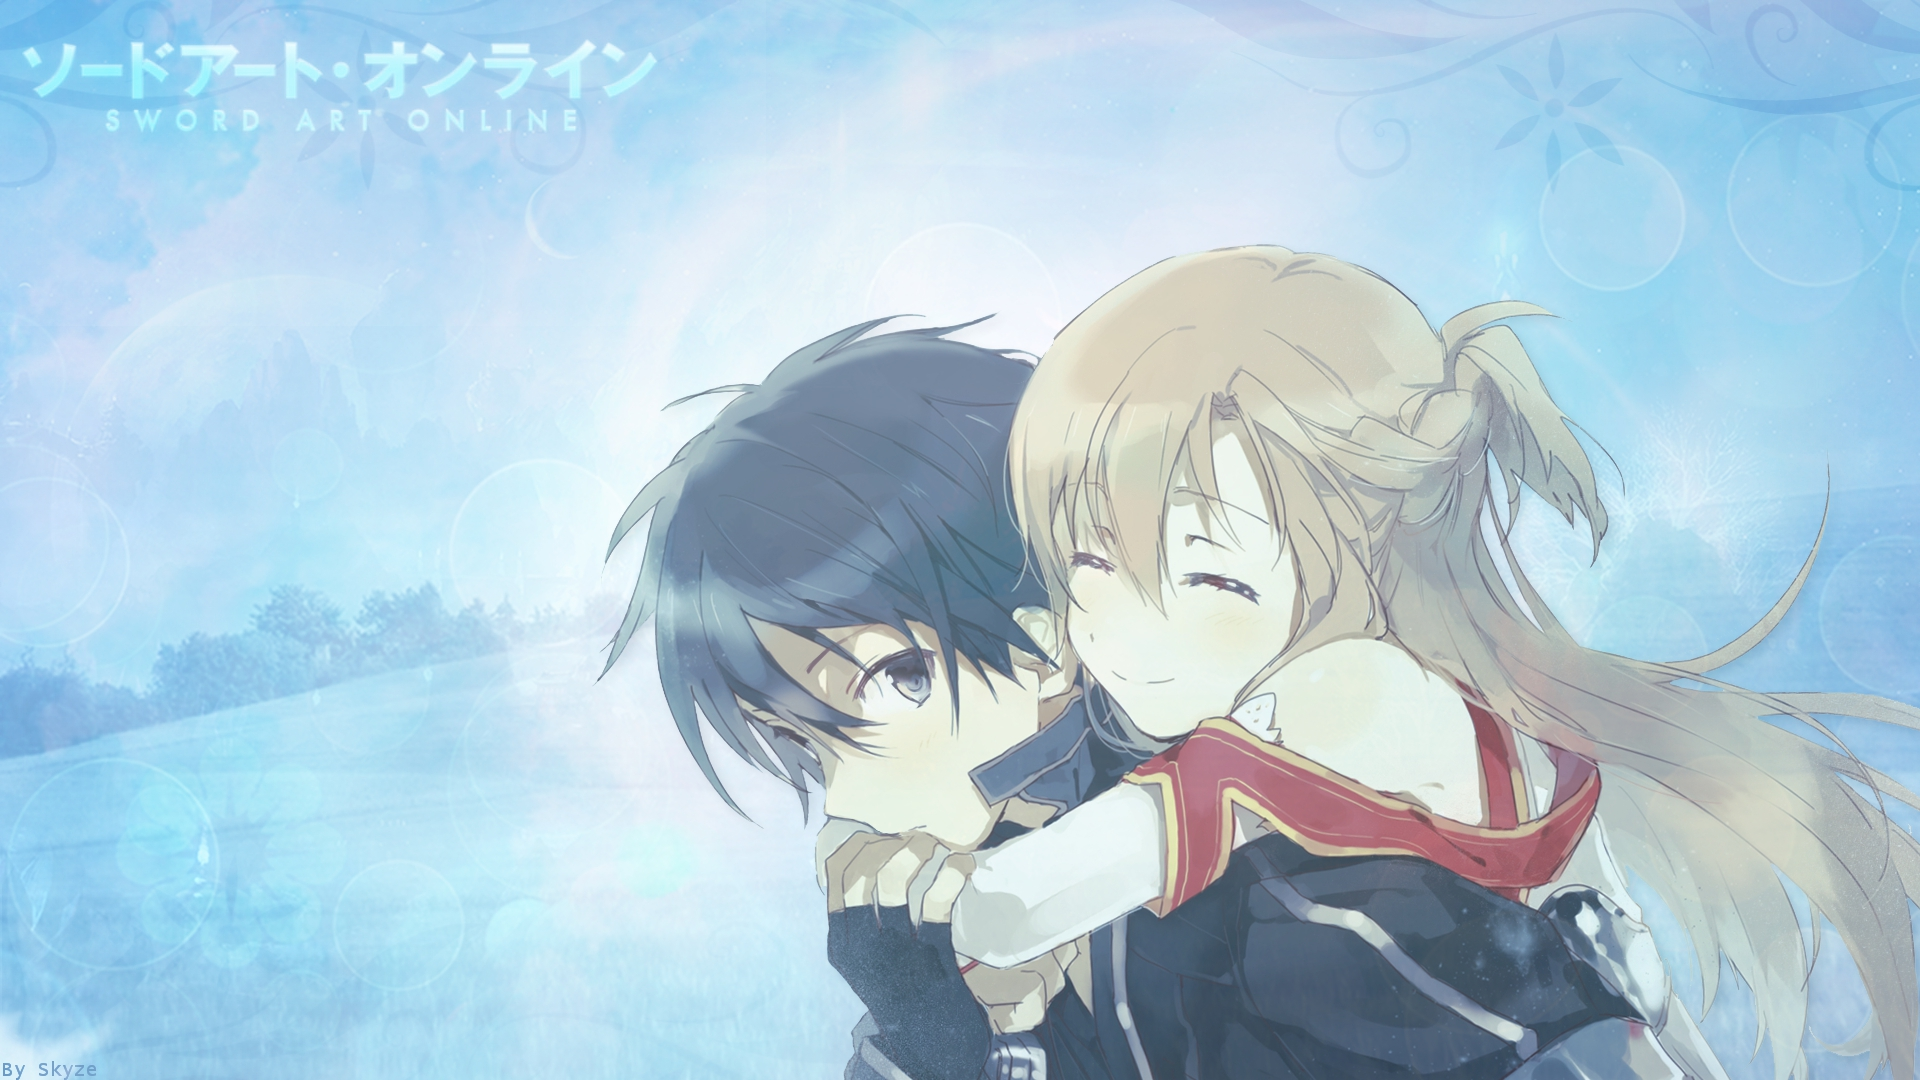 Foto Kirito Dan Asuna download wallpaper from anime sword art online with - cute